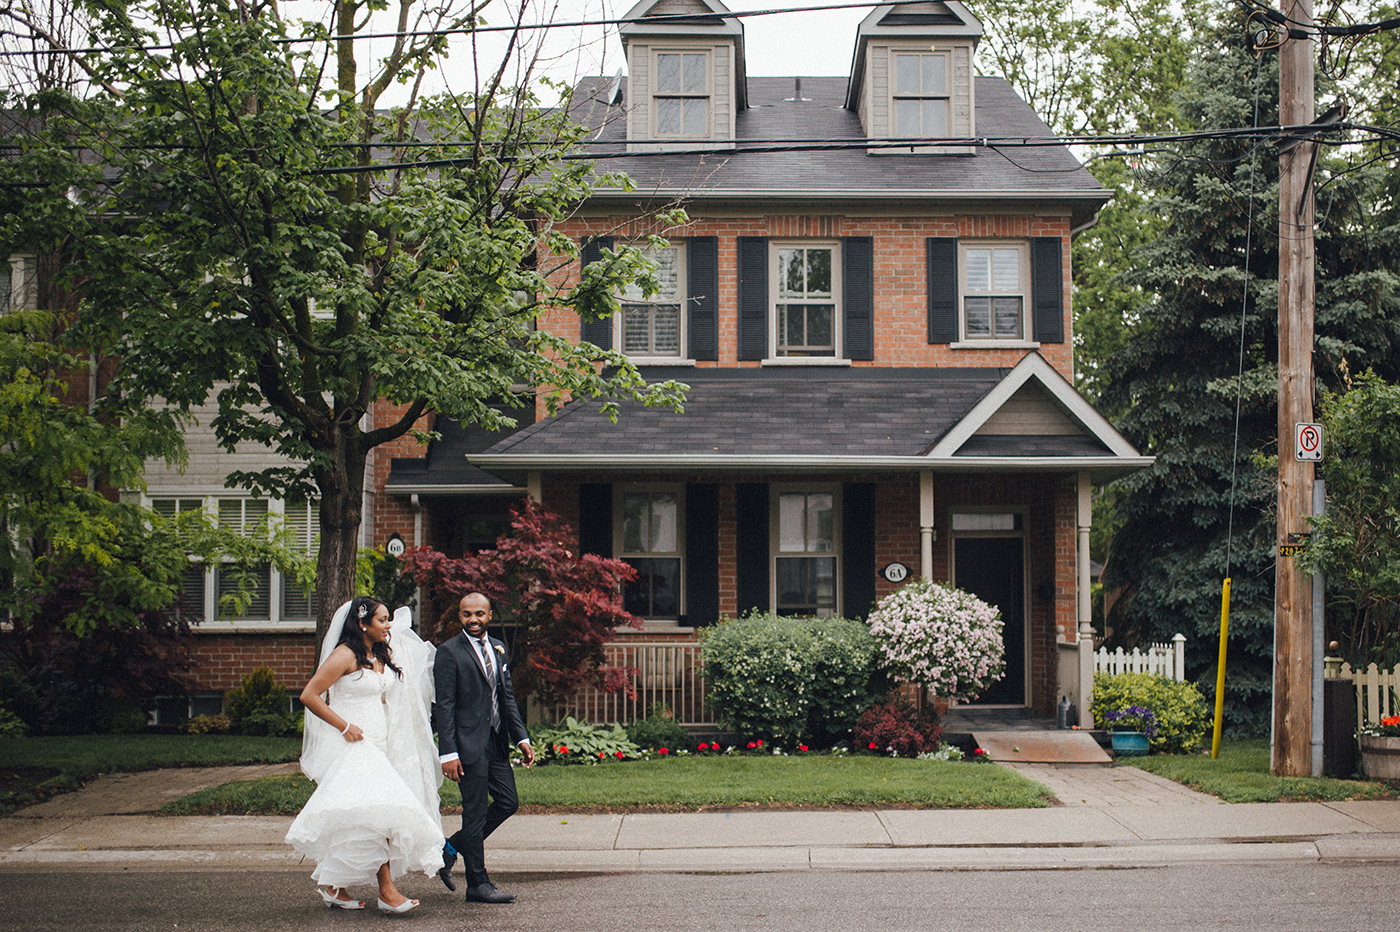 Unionville Toronto Ontario, Documentary Wedding photographer